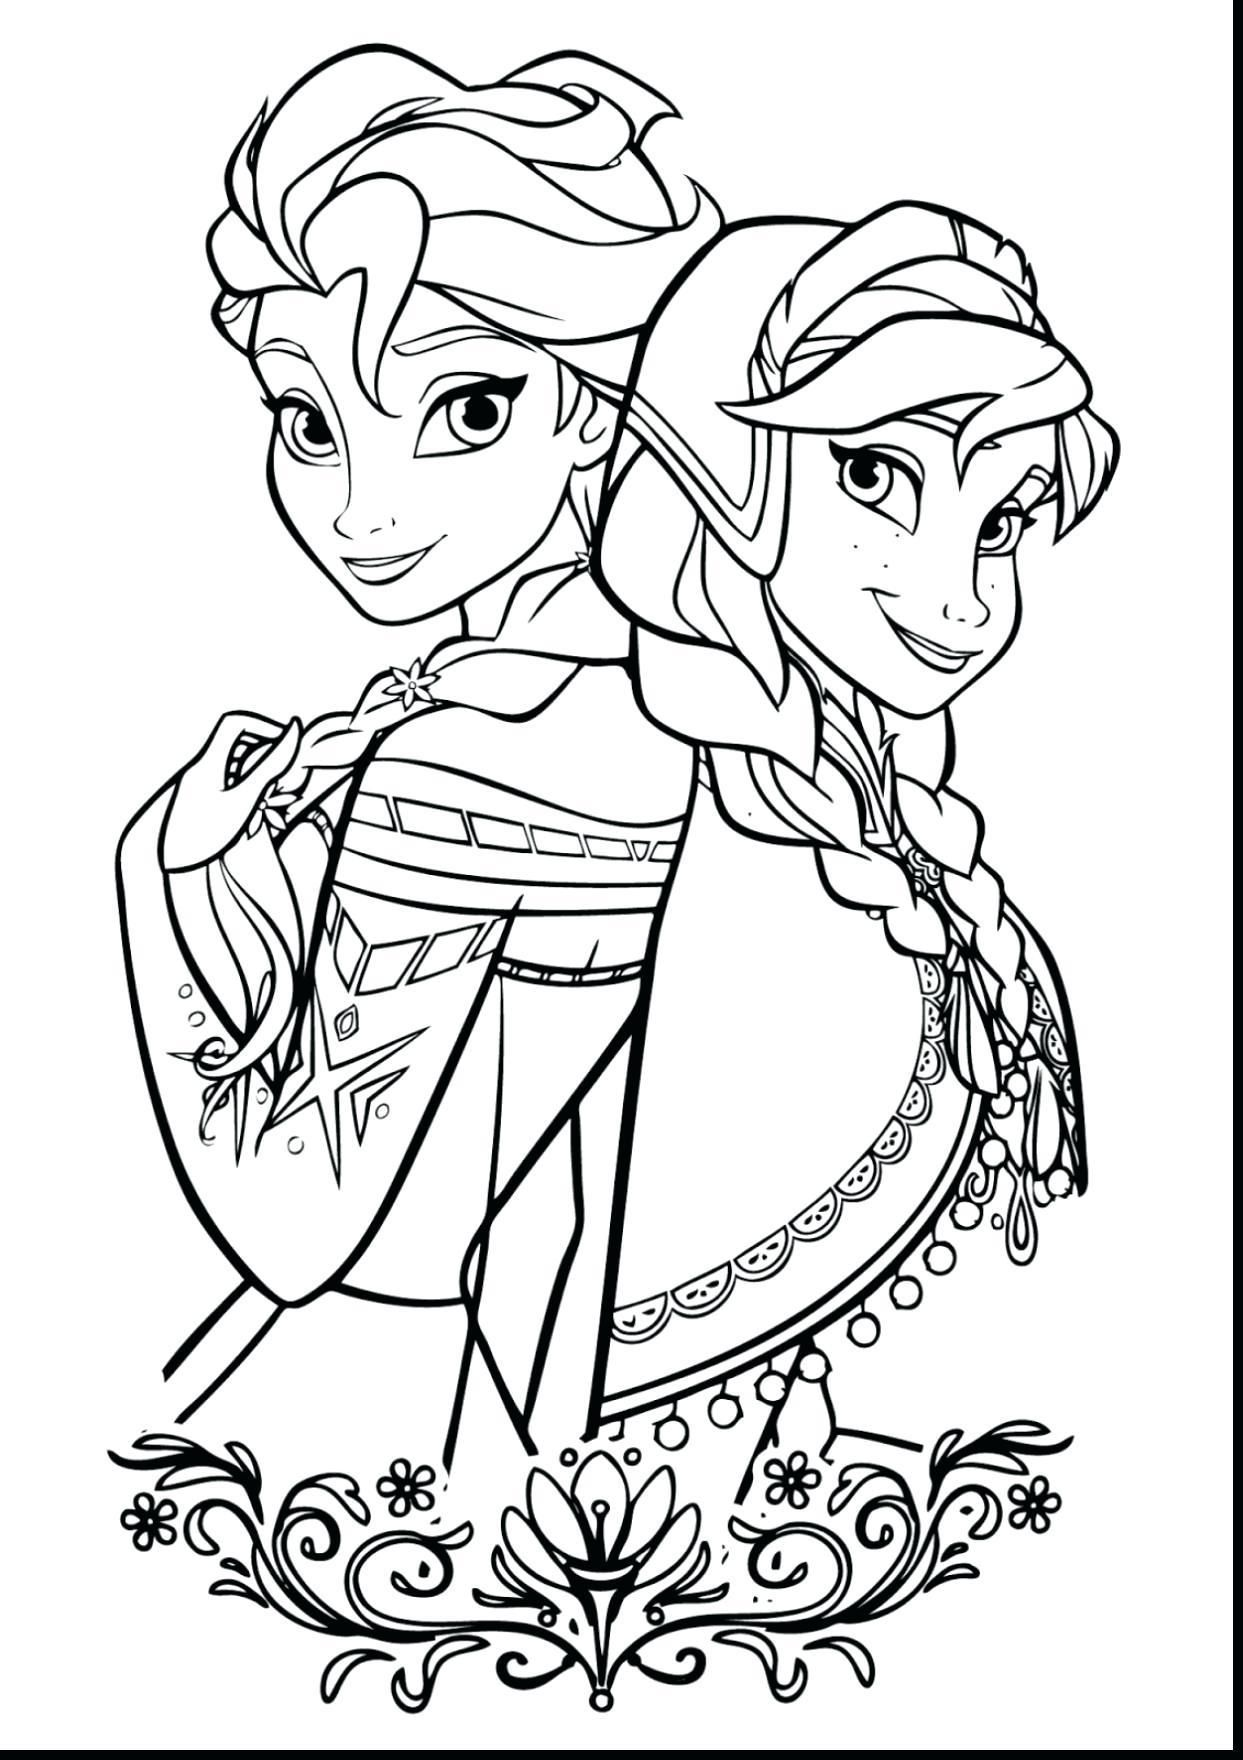 1243x1760 Frozen Coloring Pages Anna And Kristoff Family Coloring Page Fun